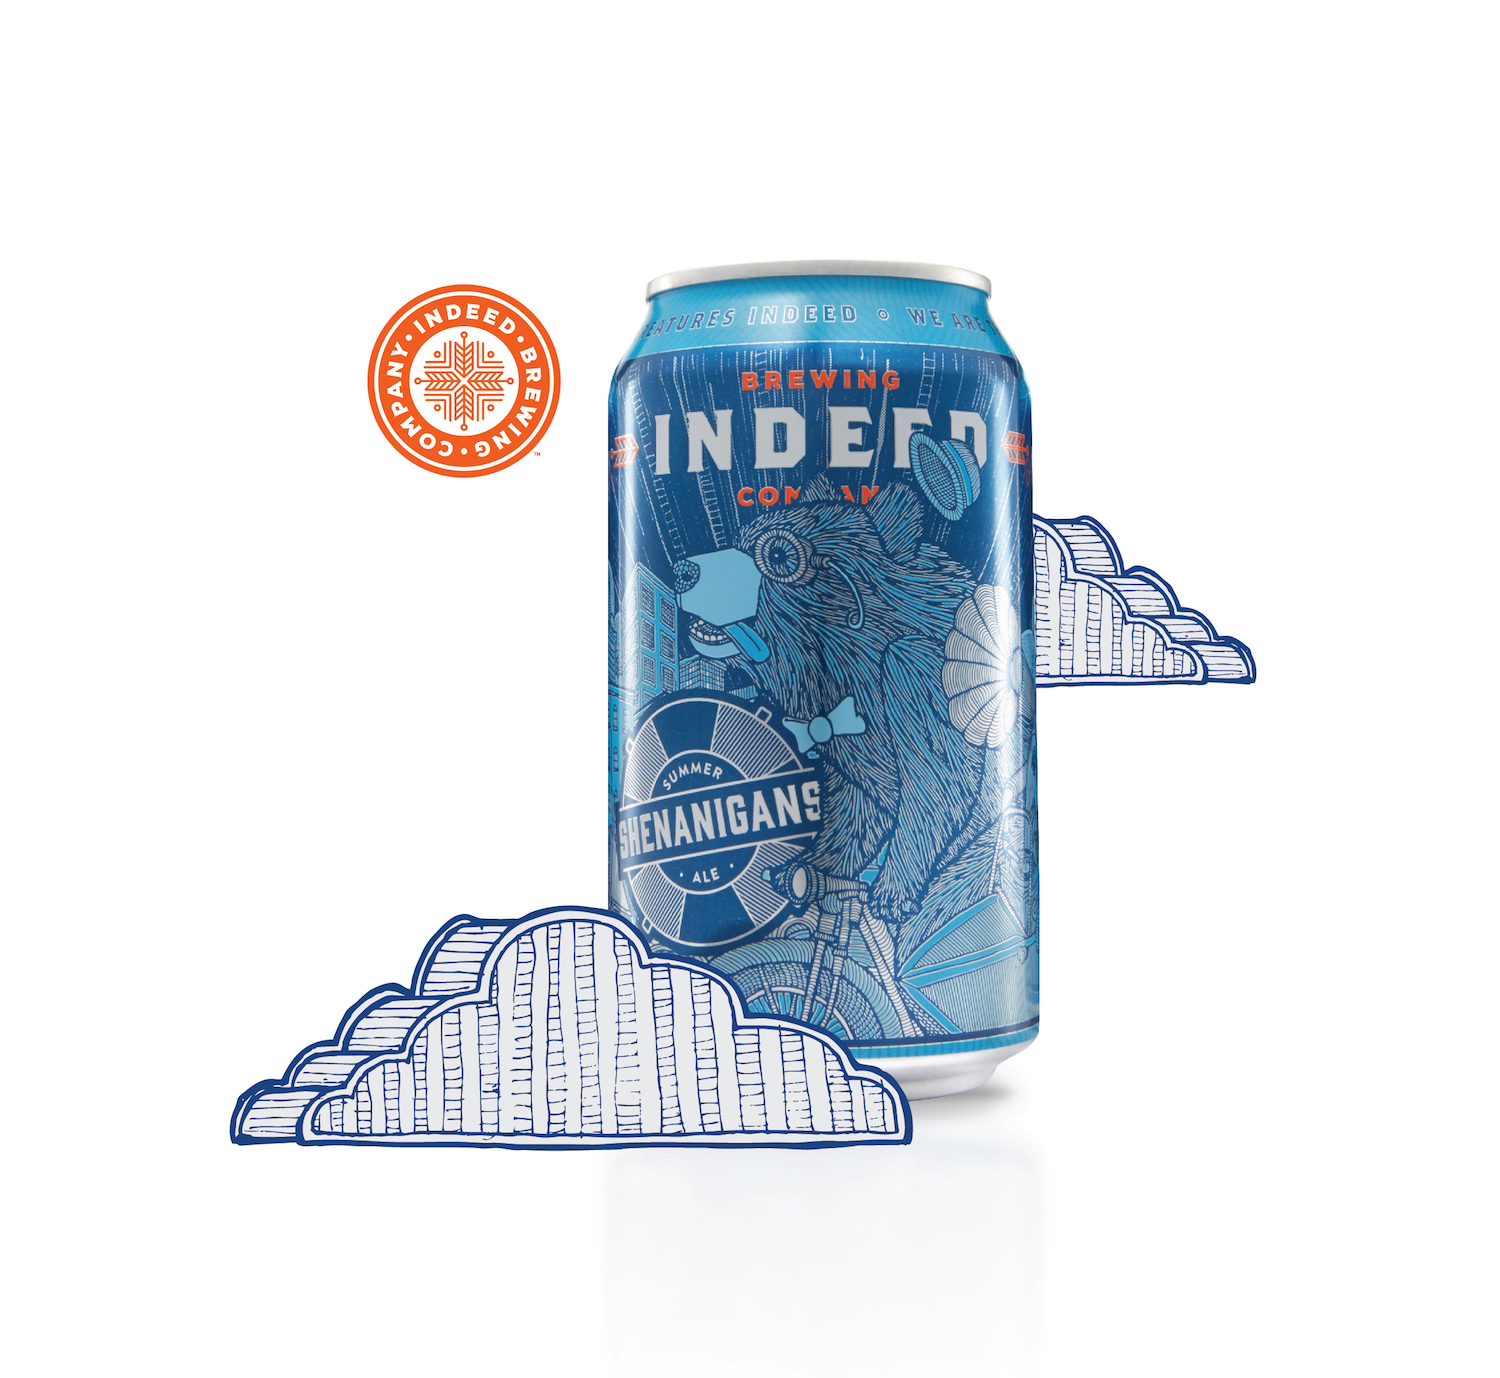 Indeed Brewing Co. image